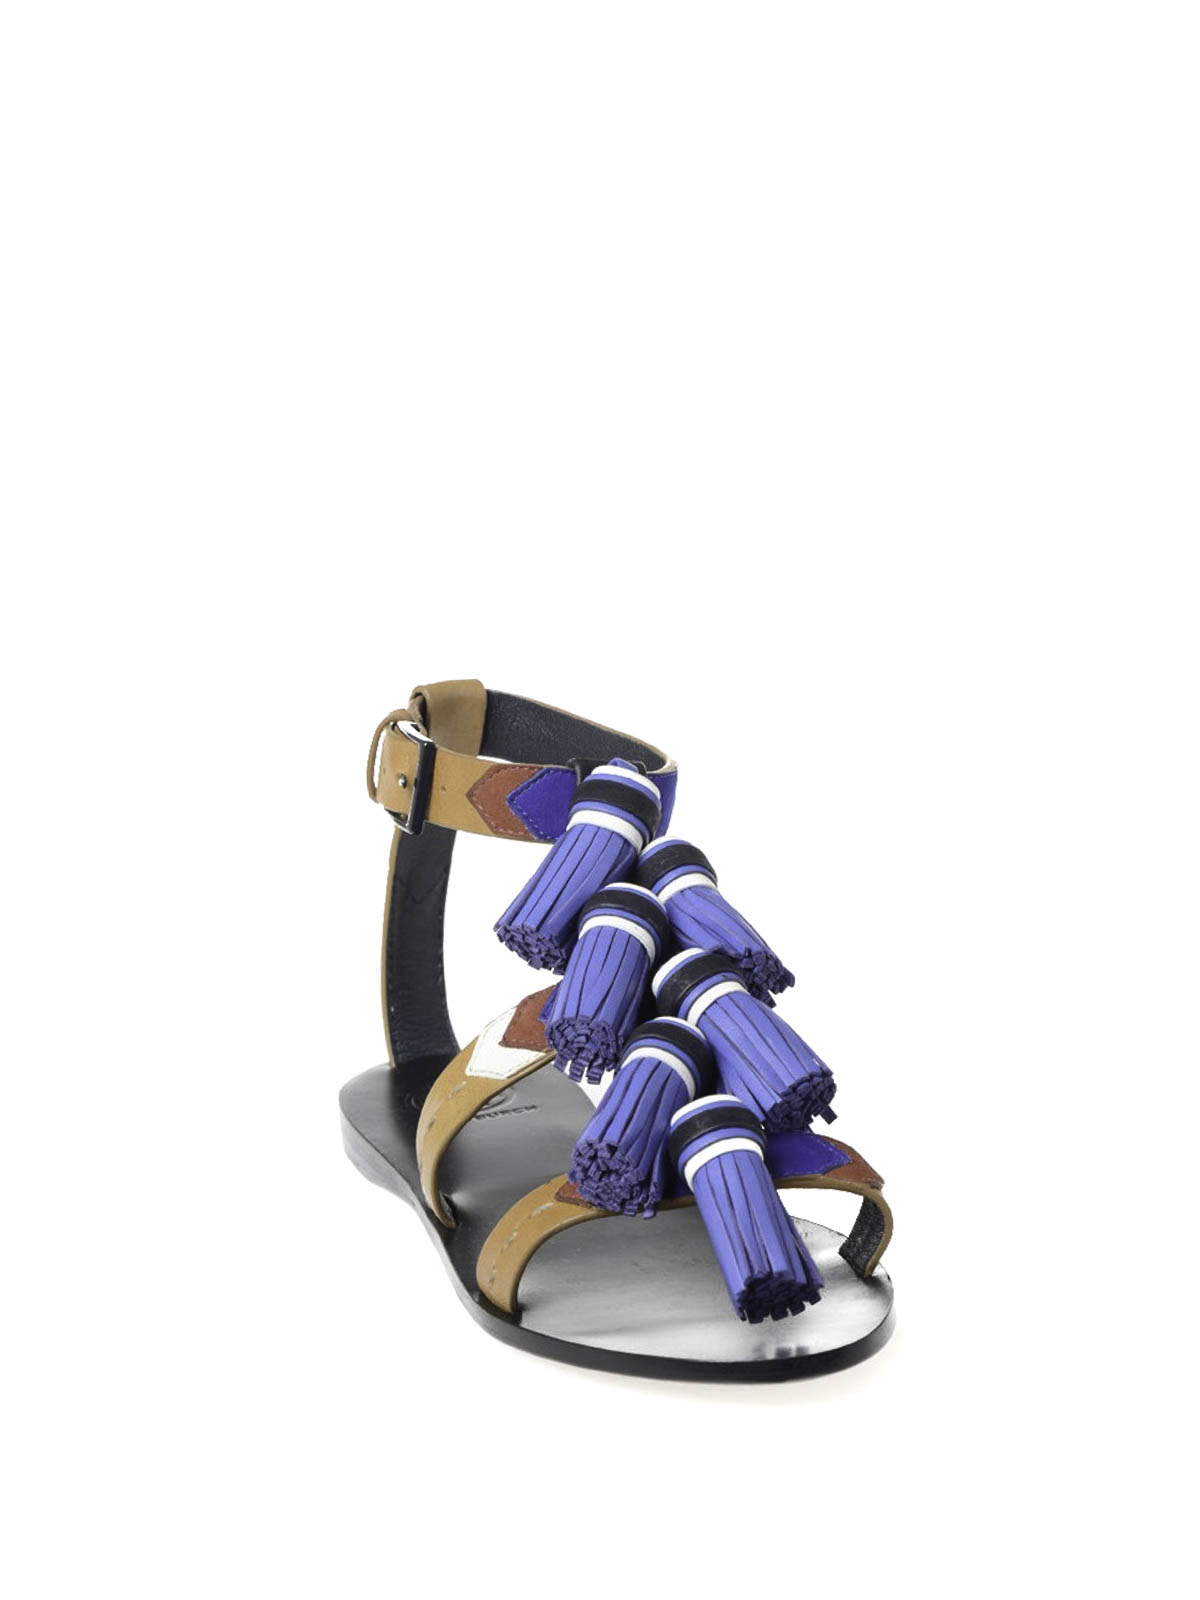 0efb4f73fb16 Tory Burch - Weaver flat sandals with tassels - sandals - 51158685 484